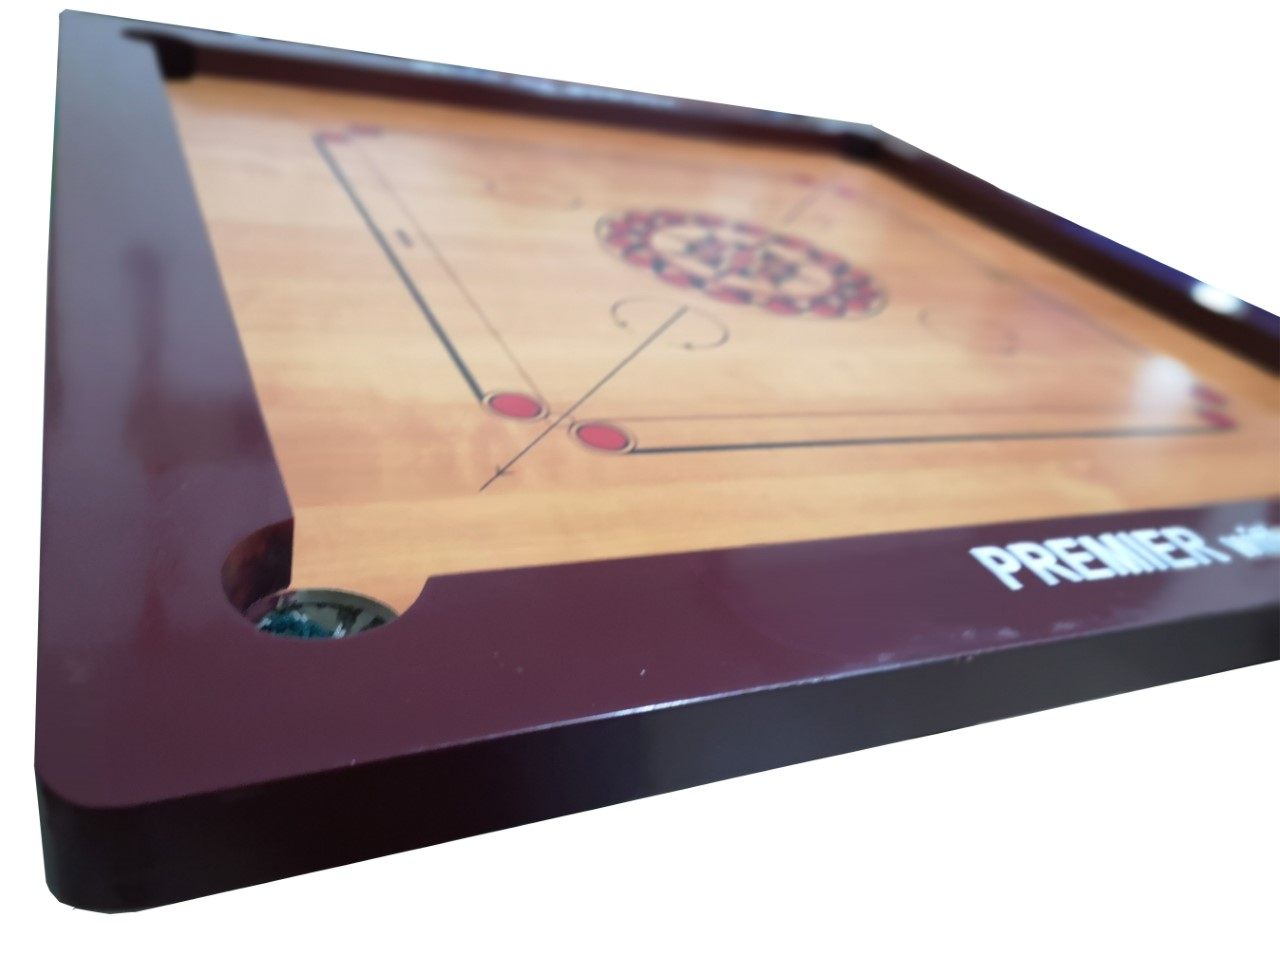 GC414 Carrom Board & Chess Set (2 Faces in 1 Boxes) with Carrom Men/Stricker (Size: 88.0 x 88.0 cm)